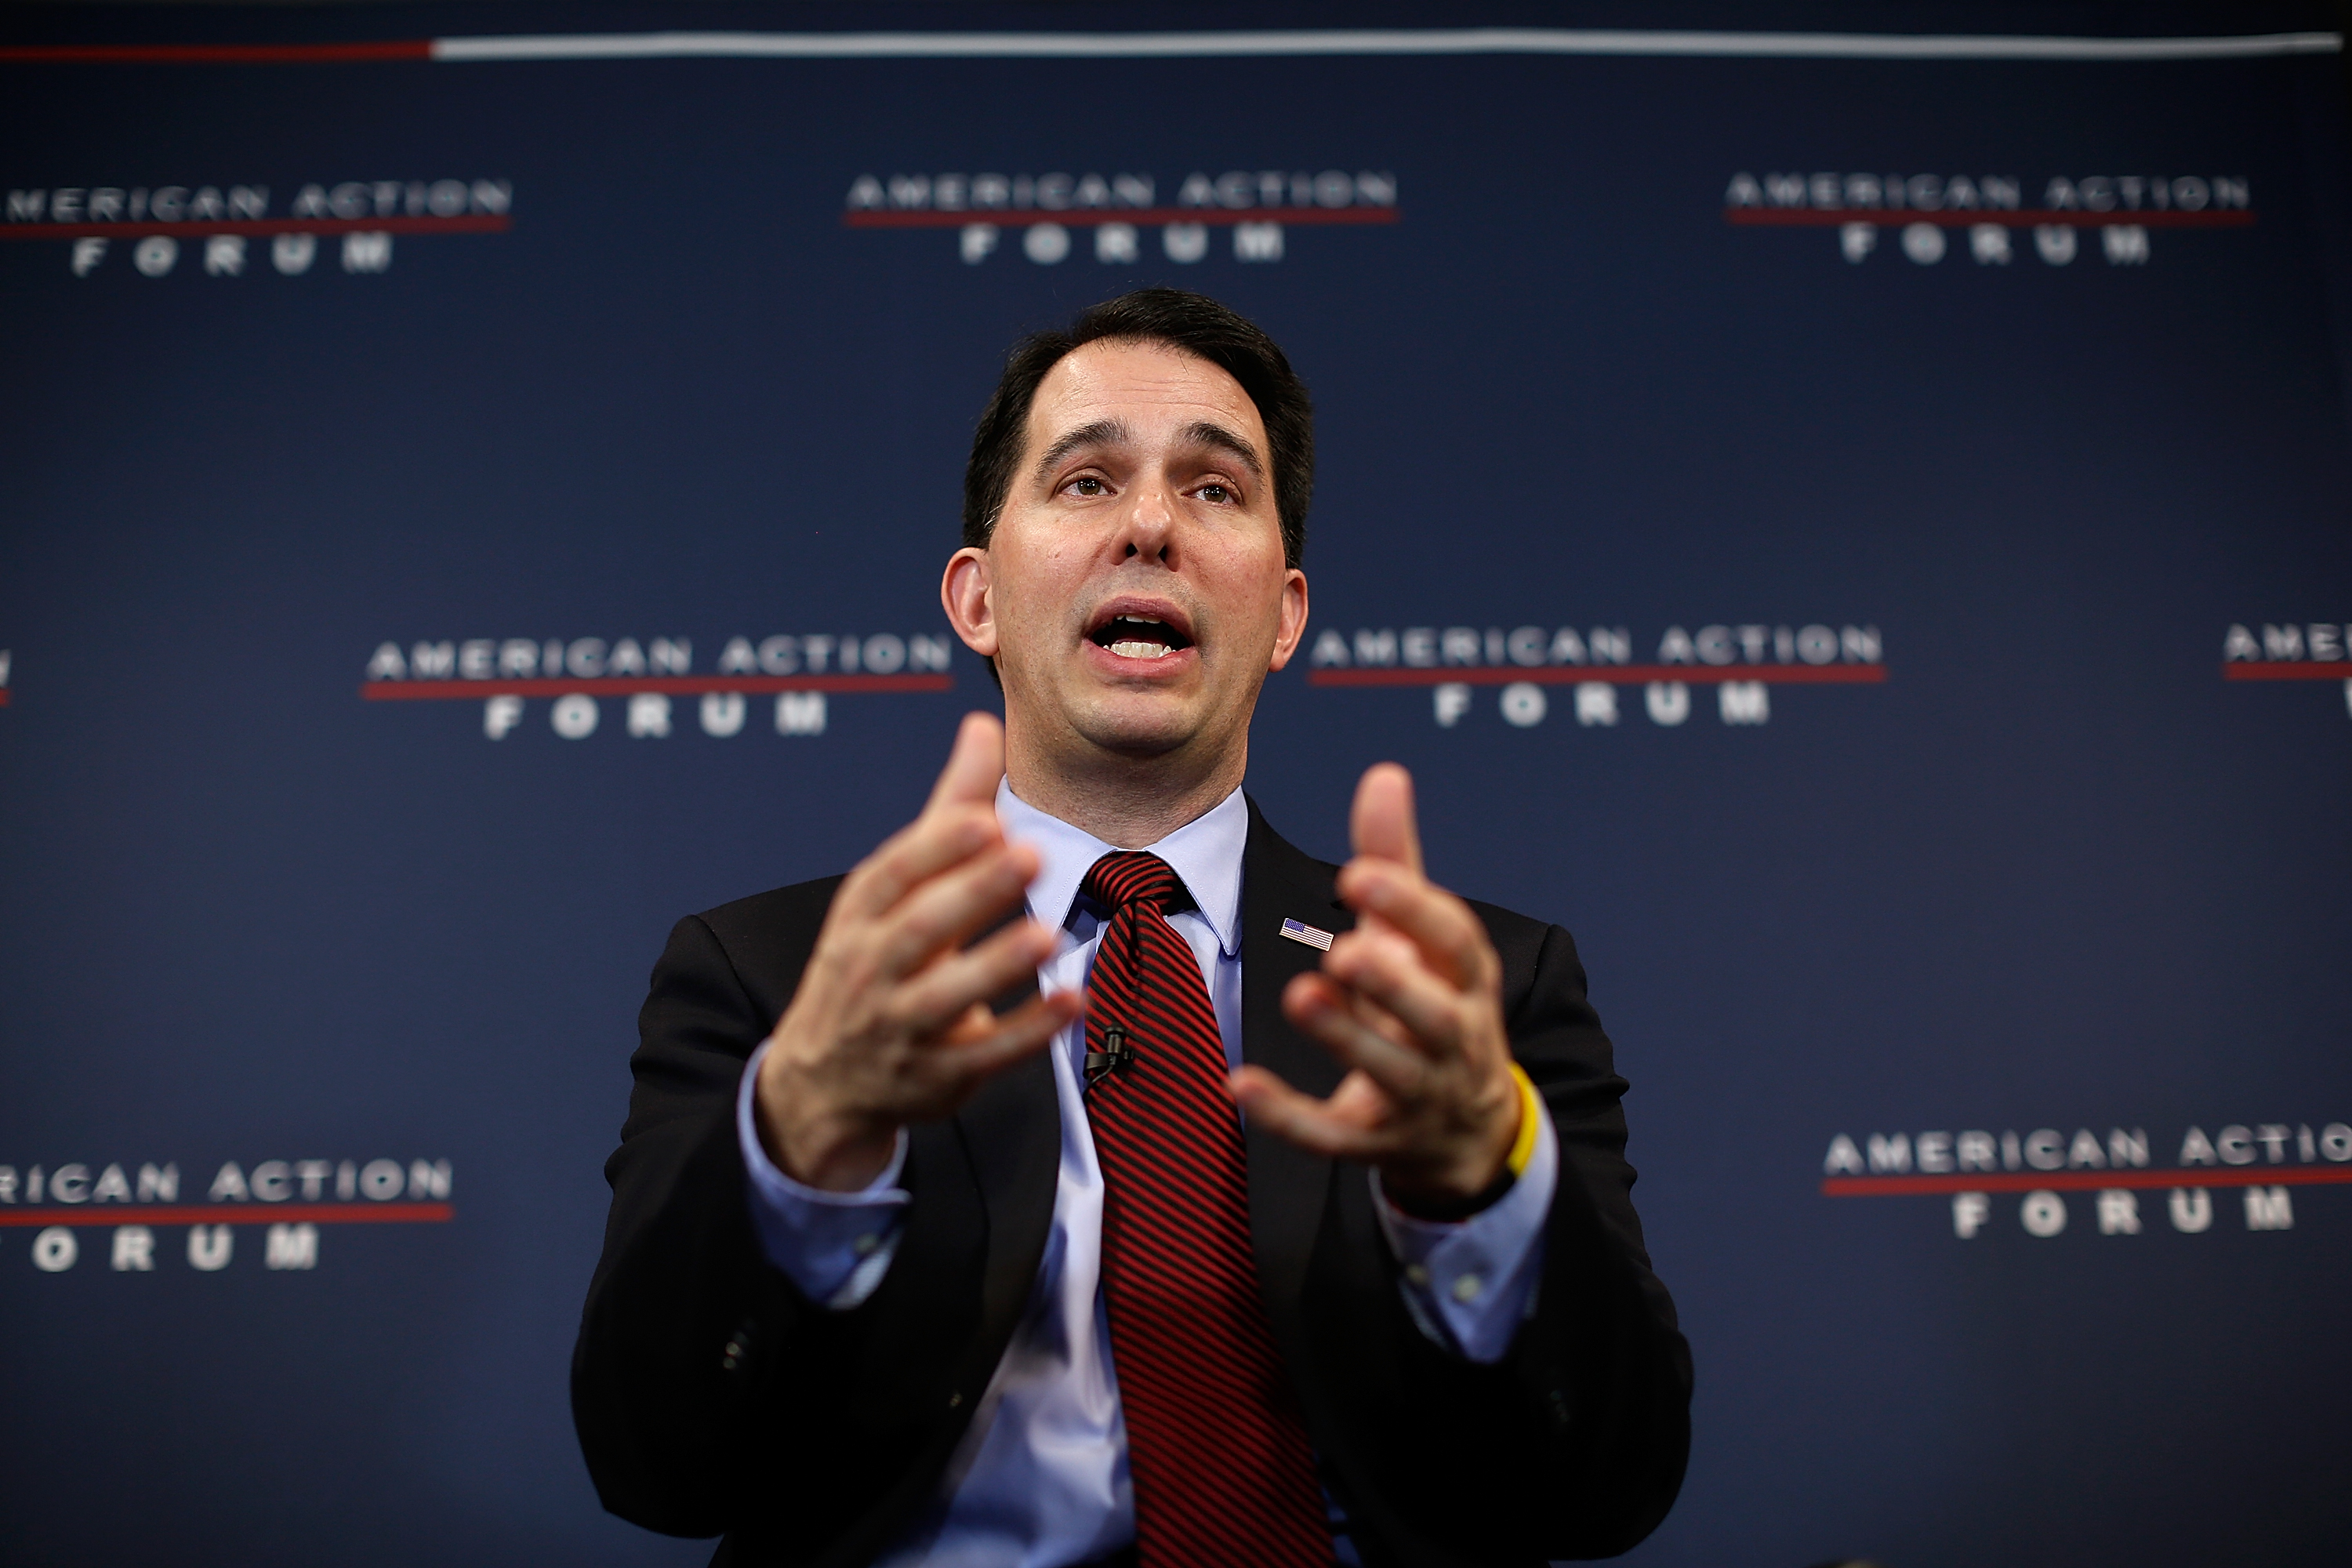 "WASHINGTON, DC - JANUARY 30: Wisconsin Governor Scott Walker speaks at the American Action Forum January 30, 2015 in Washington, DC. Earlier in the week Walker announced the formation of ""Our American Revival"", a new committee designed to explore the option of a presidential bid in 2016."